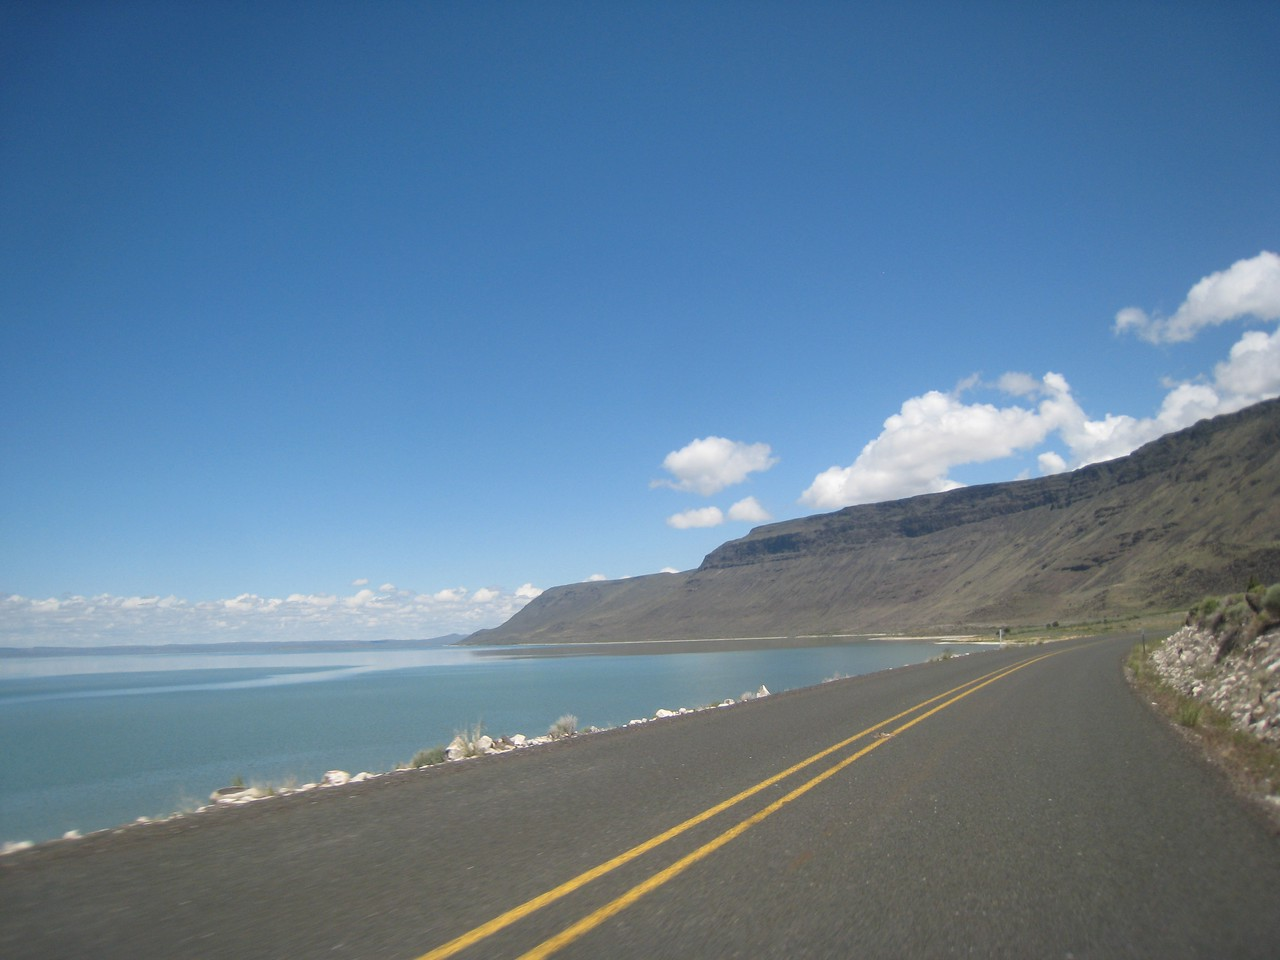 Crossing into Oregon, we skirt the east side of Lake Abert